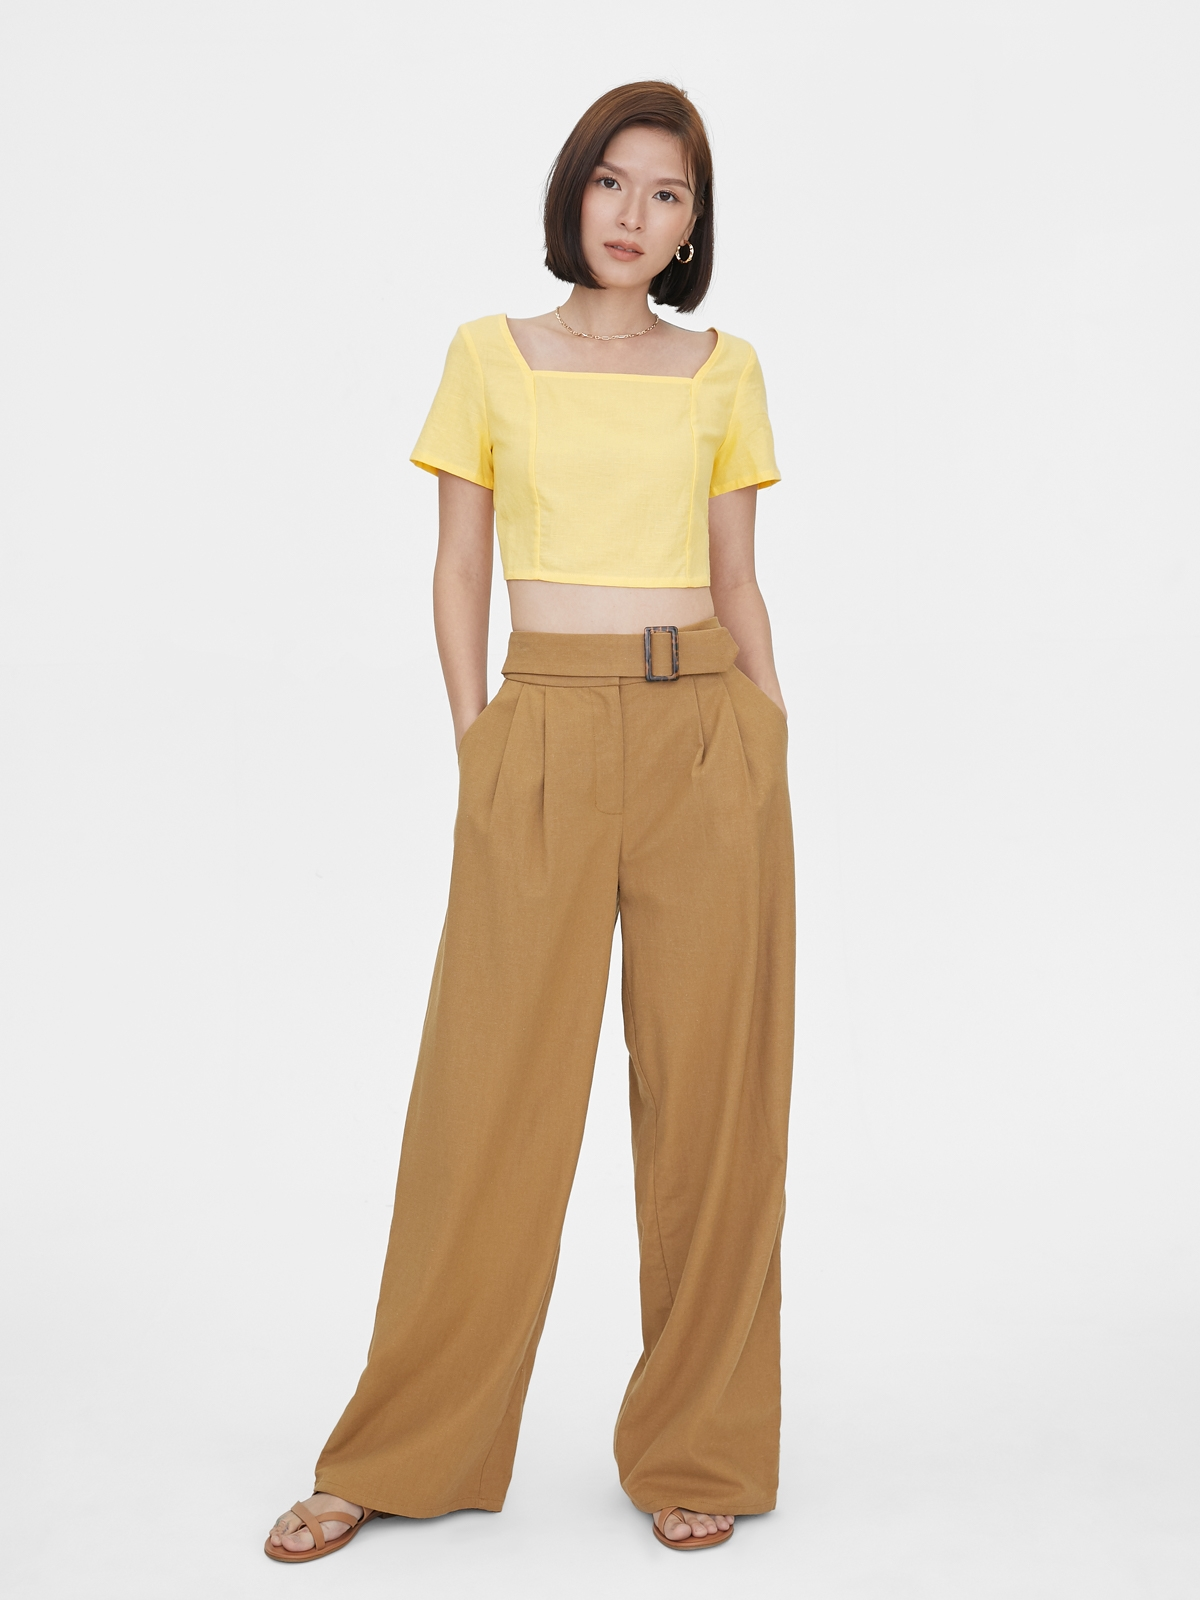 Back Buttoned Up Crop Top Yellow